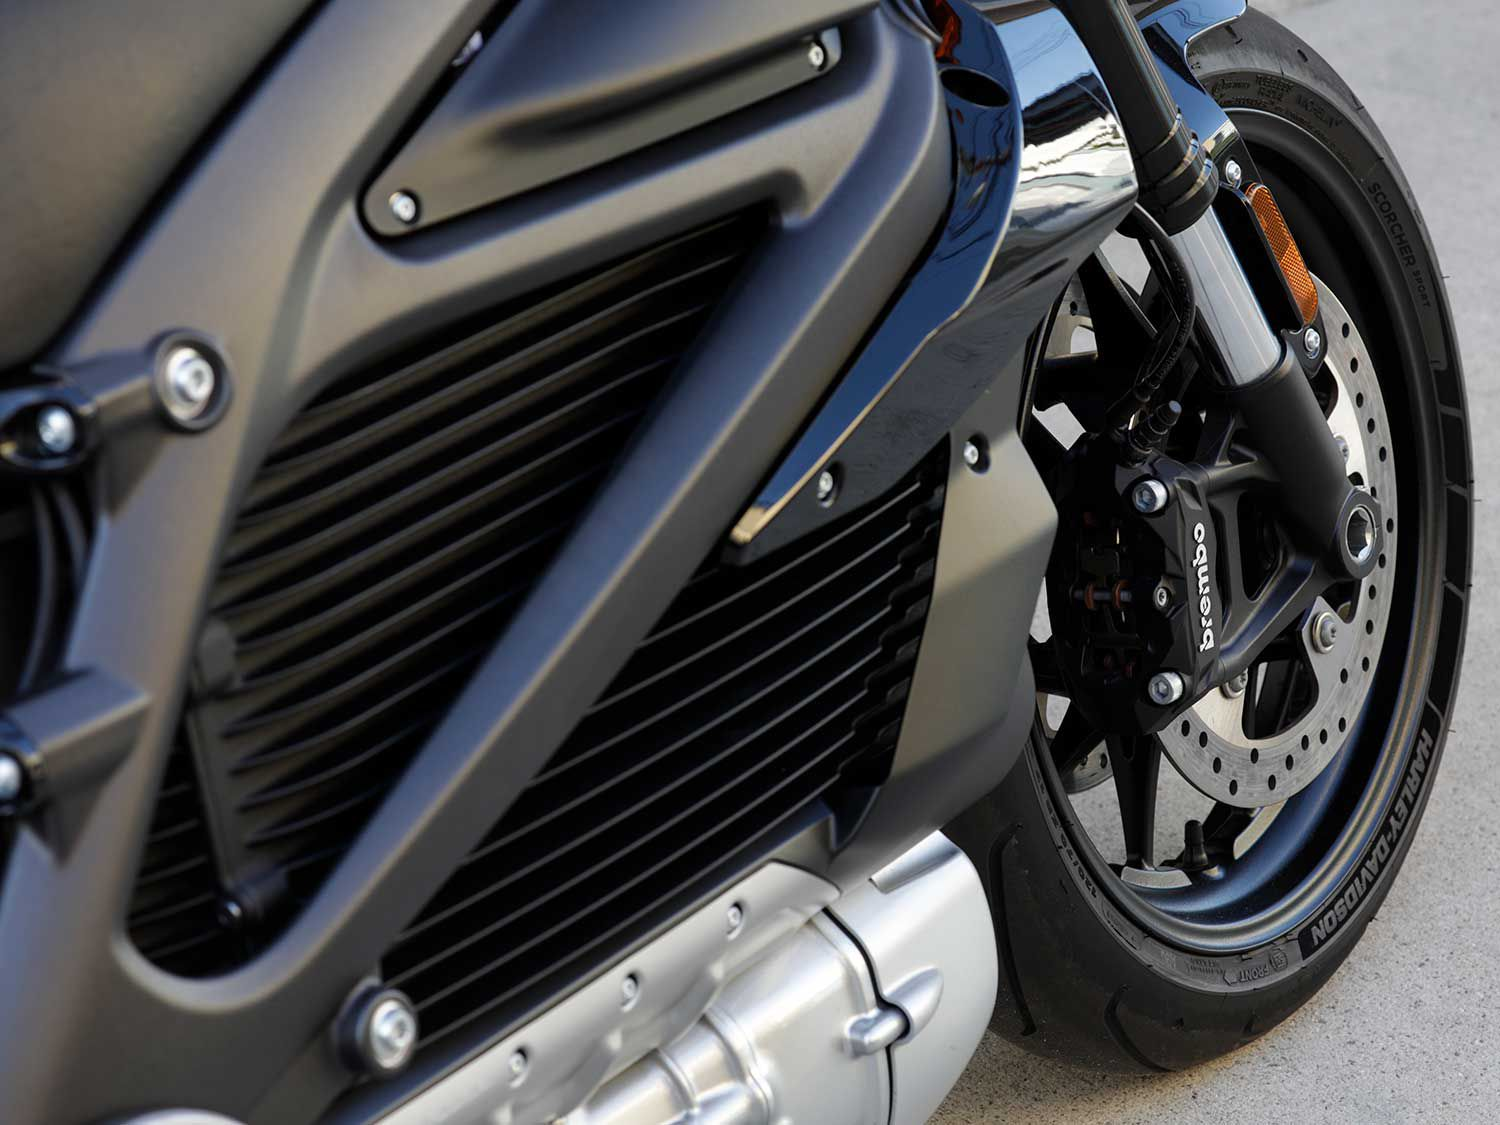 The Harley-Davidson LiveWire employs high-end componentry that helps it achieve a high level of road performance, regardless of powertrain design.